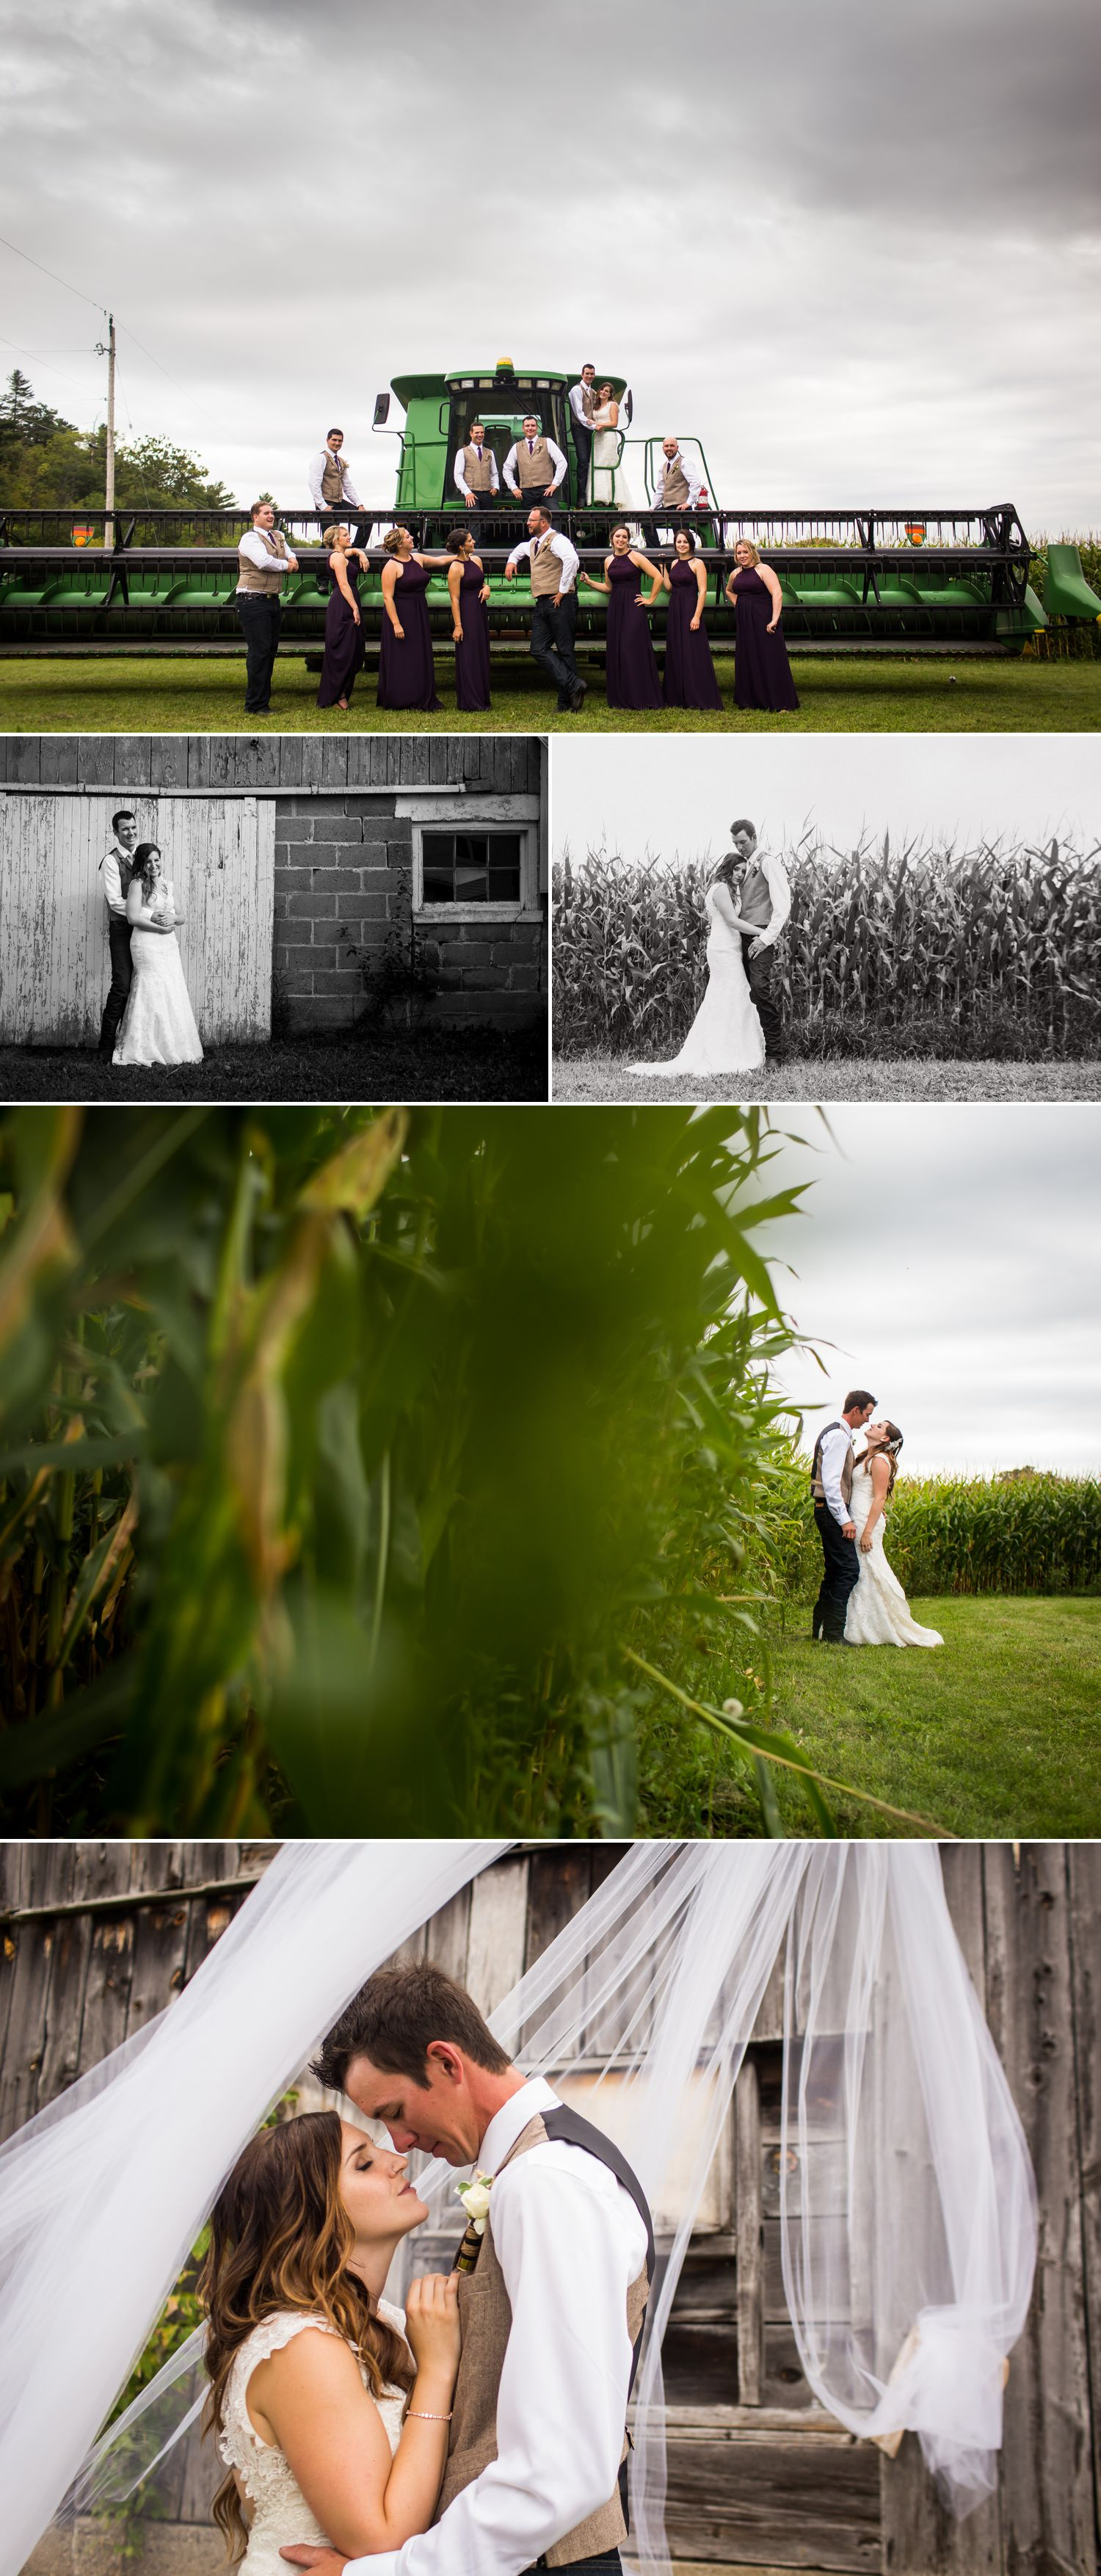 Portraits with the bride and groom and their wedding party at their farm in Carp